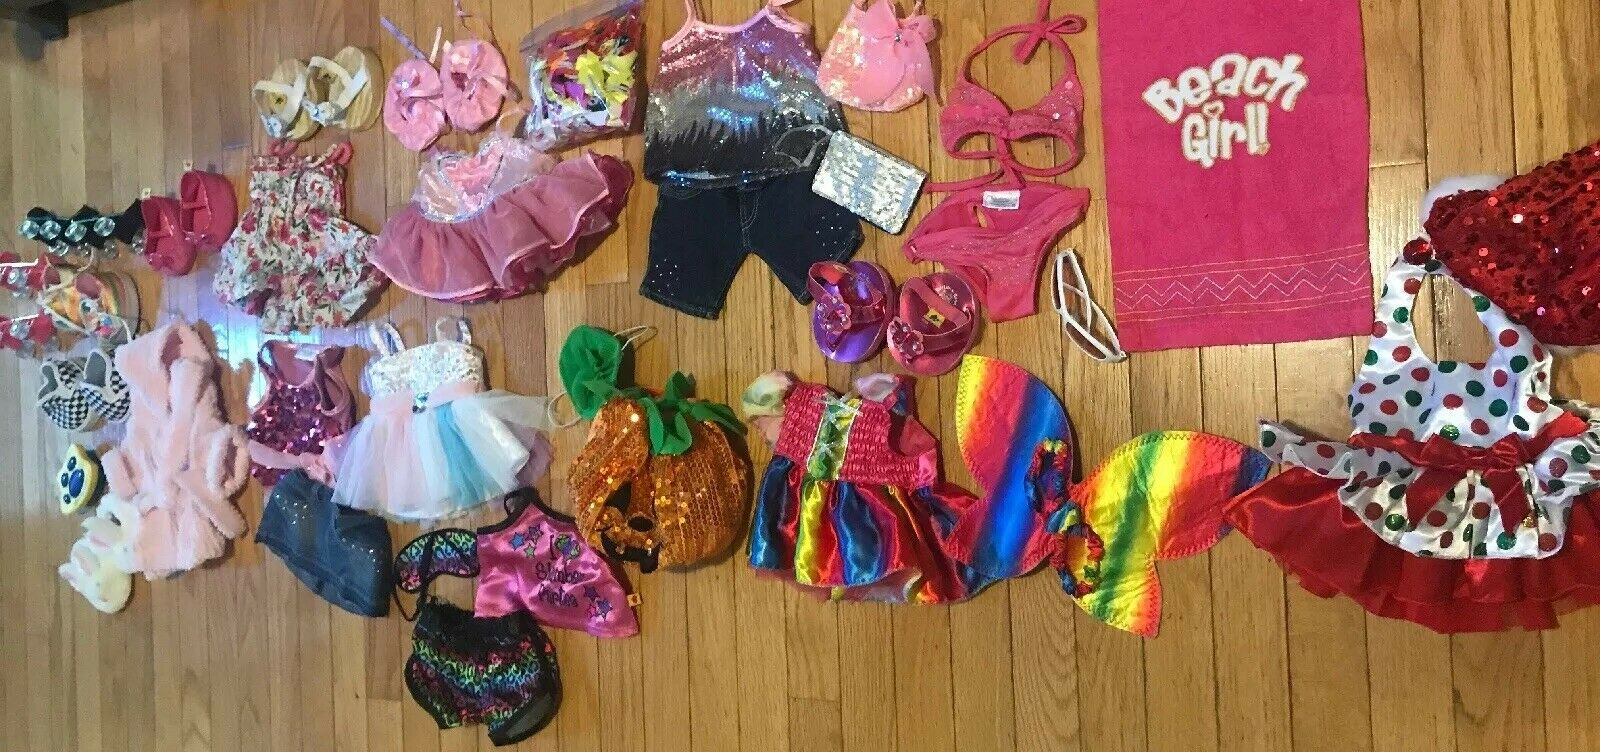 Build A Bear Workshop BBW Lot Of 11 Outfits Clothes schuhe Accesories Halloween